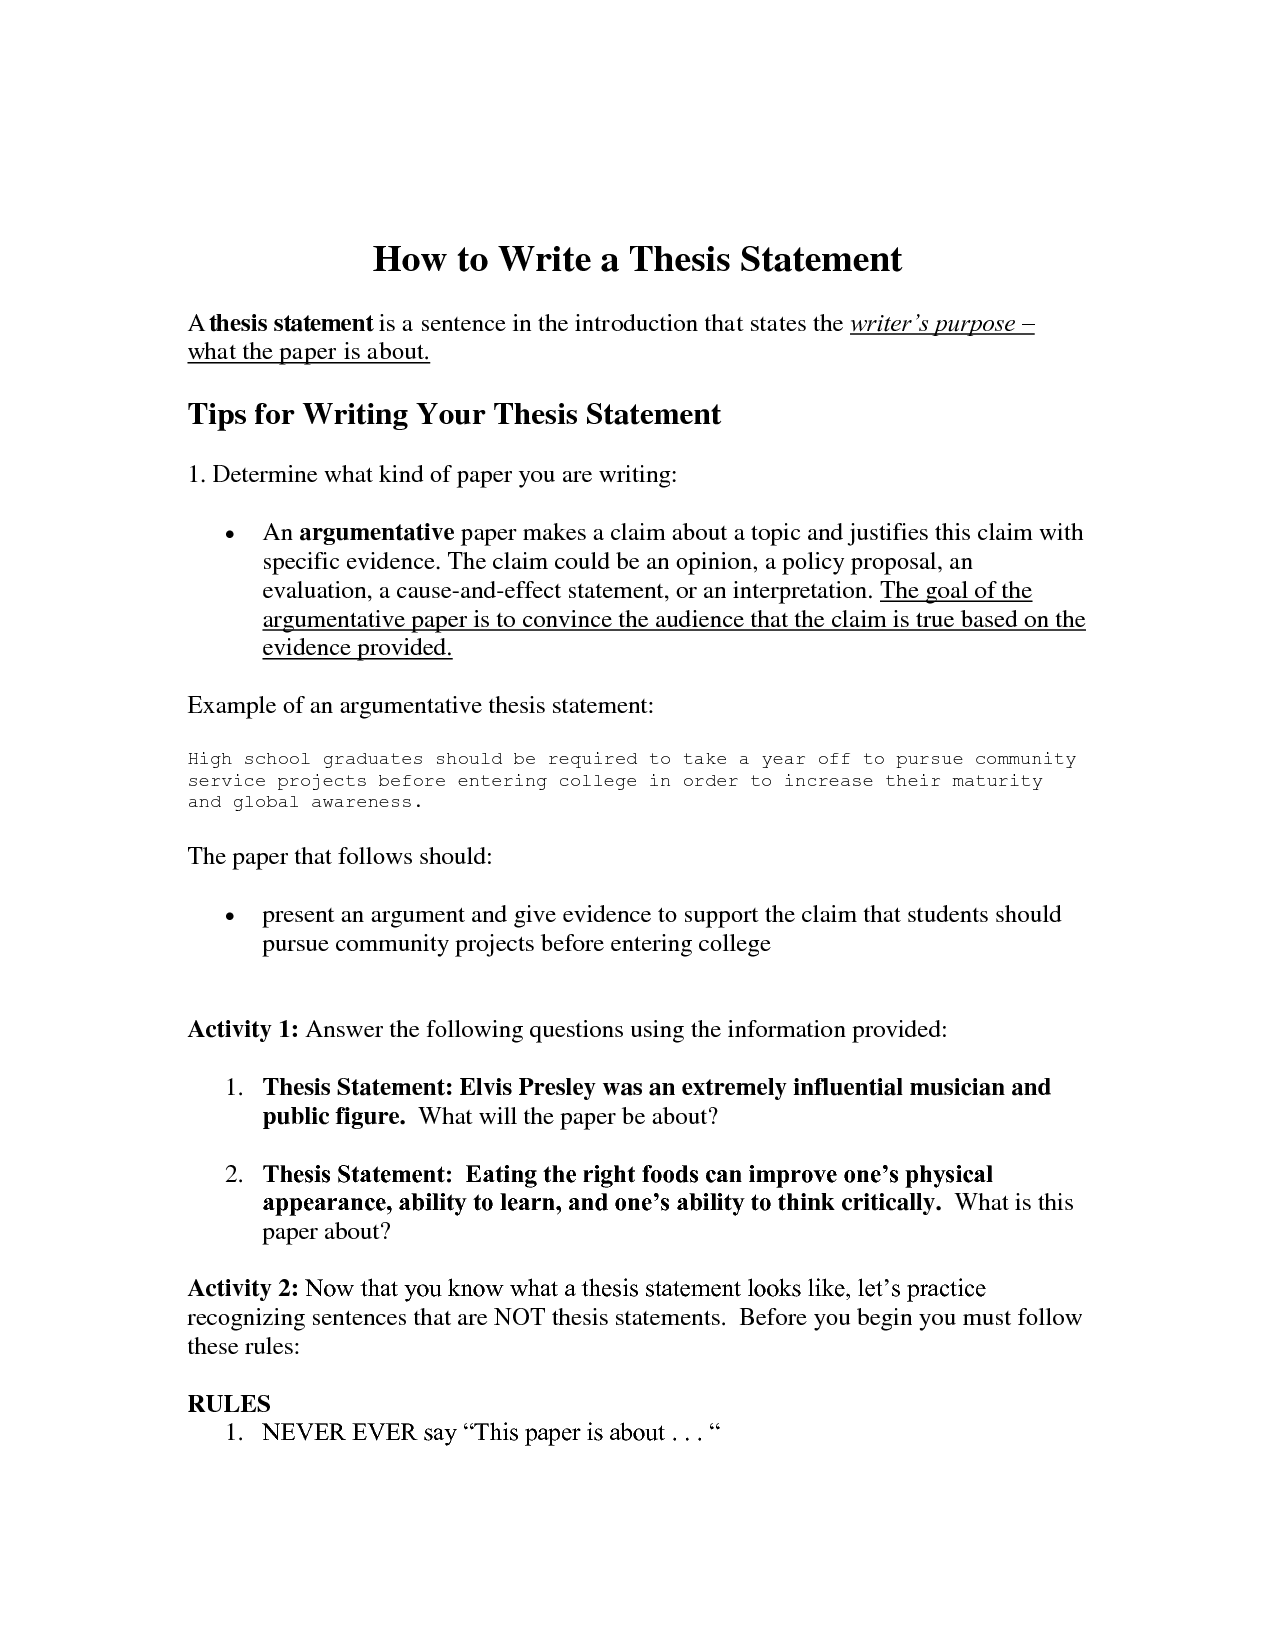 014 How To Write Thesis Statement For An Essay Statements Worksheets 488564 Frightening A Do You Informative Step By Argumentative Full